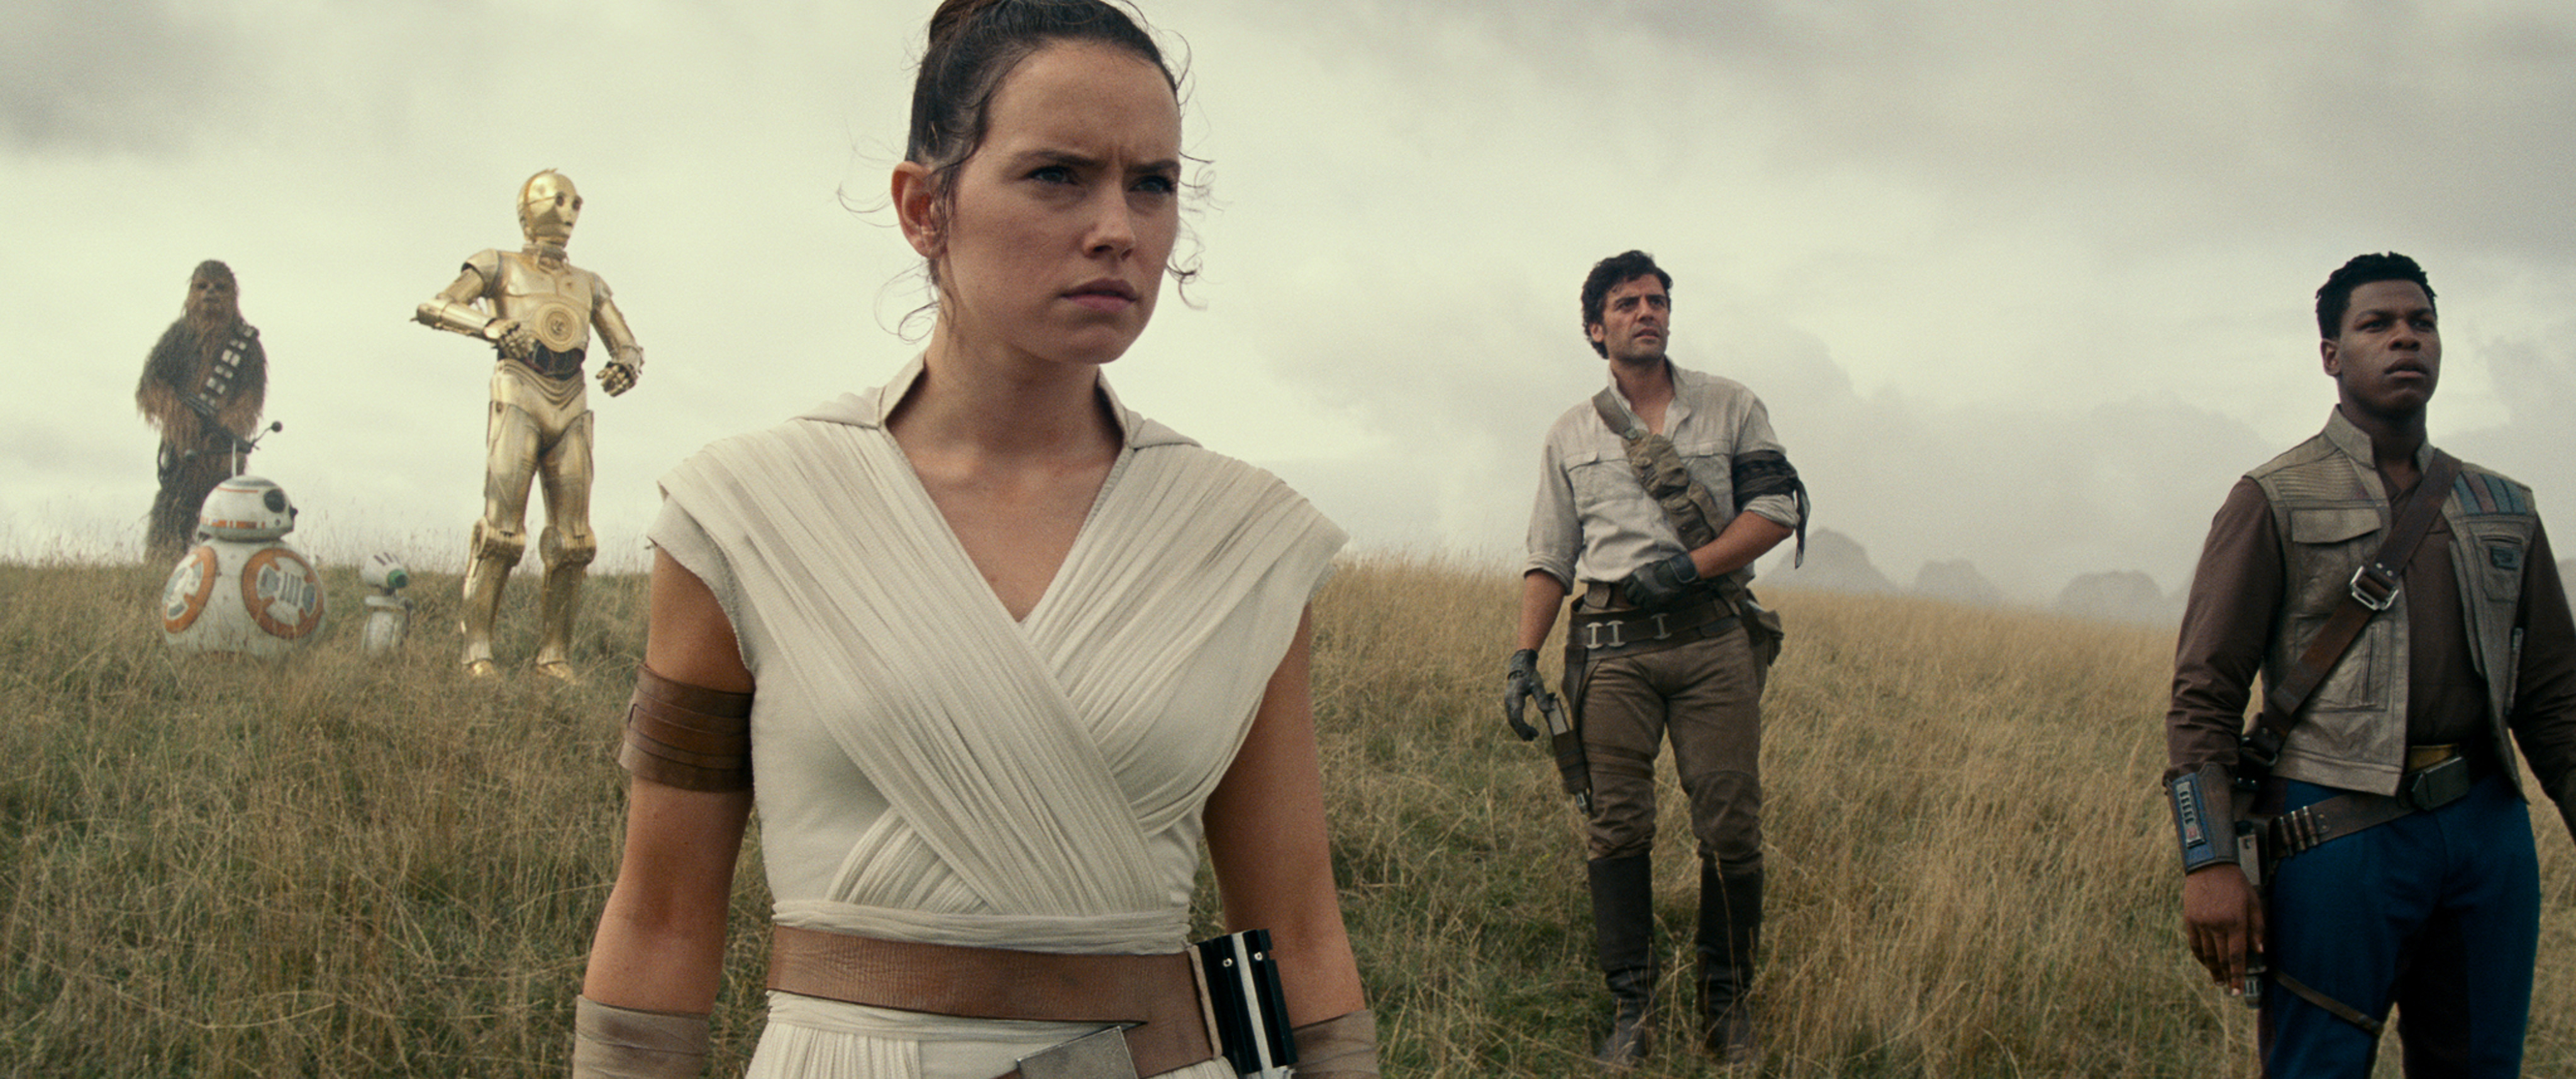 star-wars-the-rise-of-skywalker-official-high-resolution-images-6